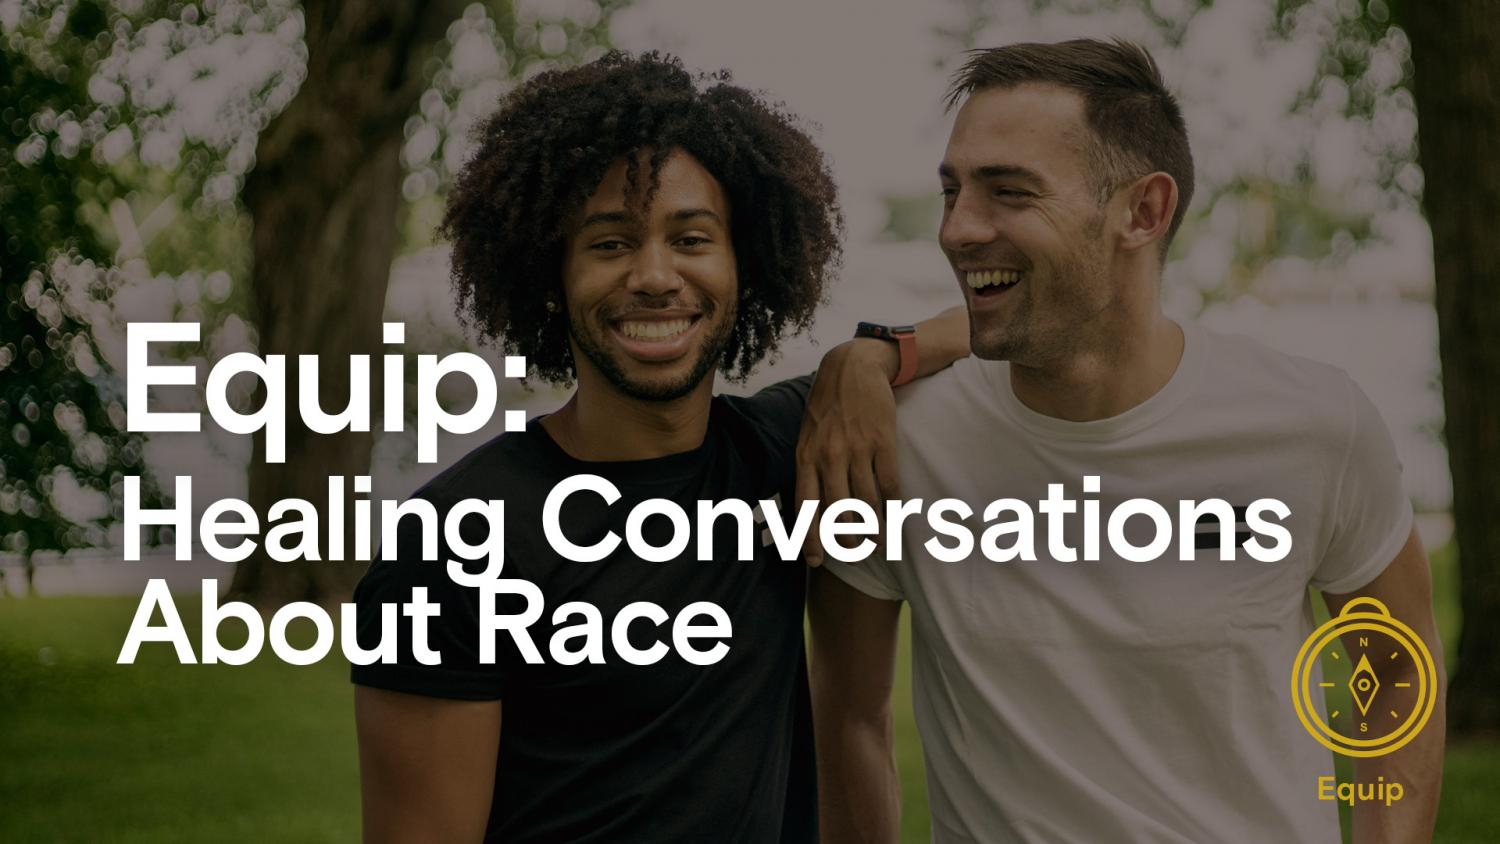 Equip: Healing Conversations About Race